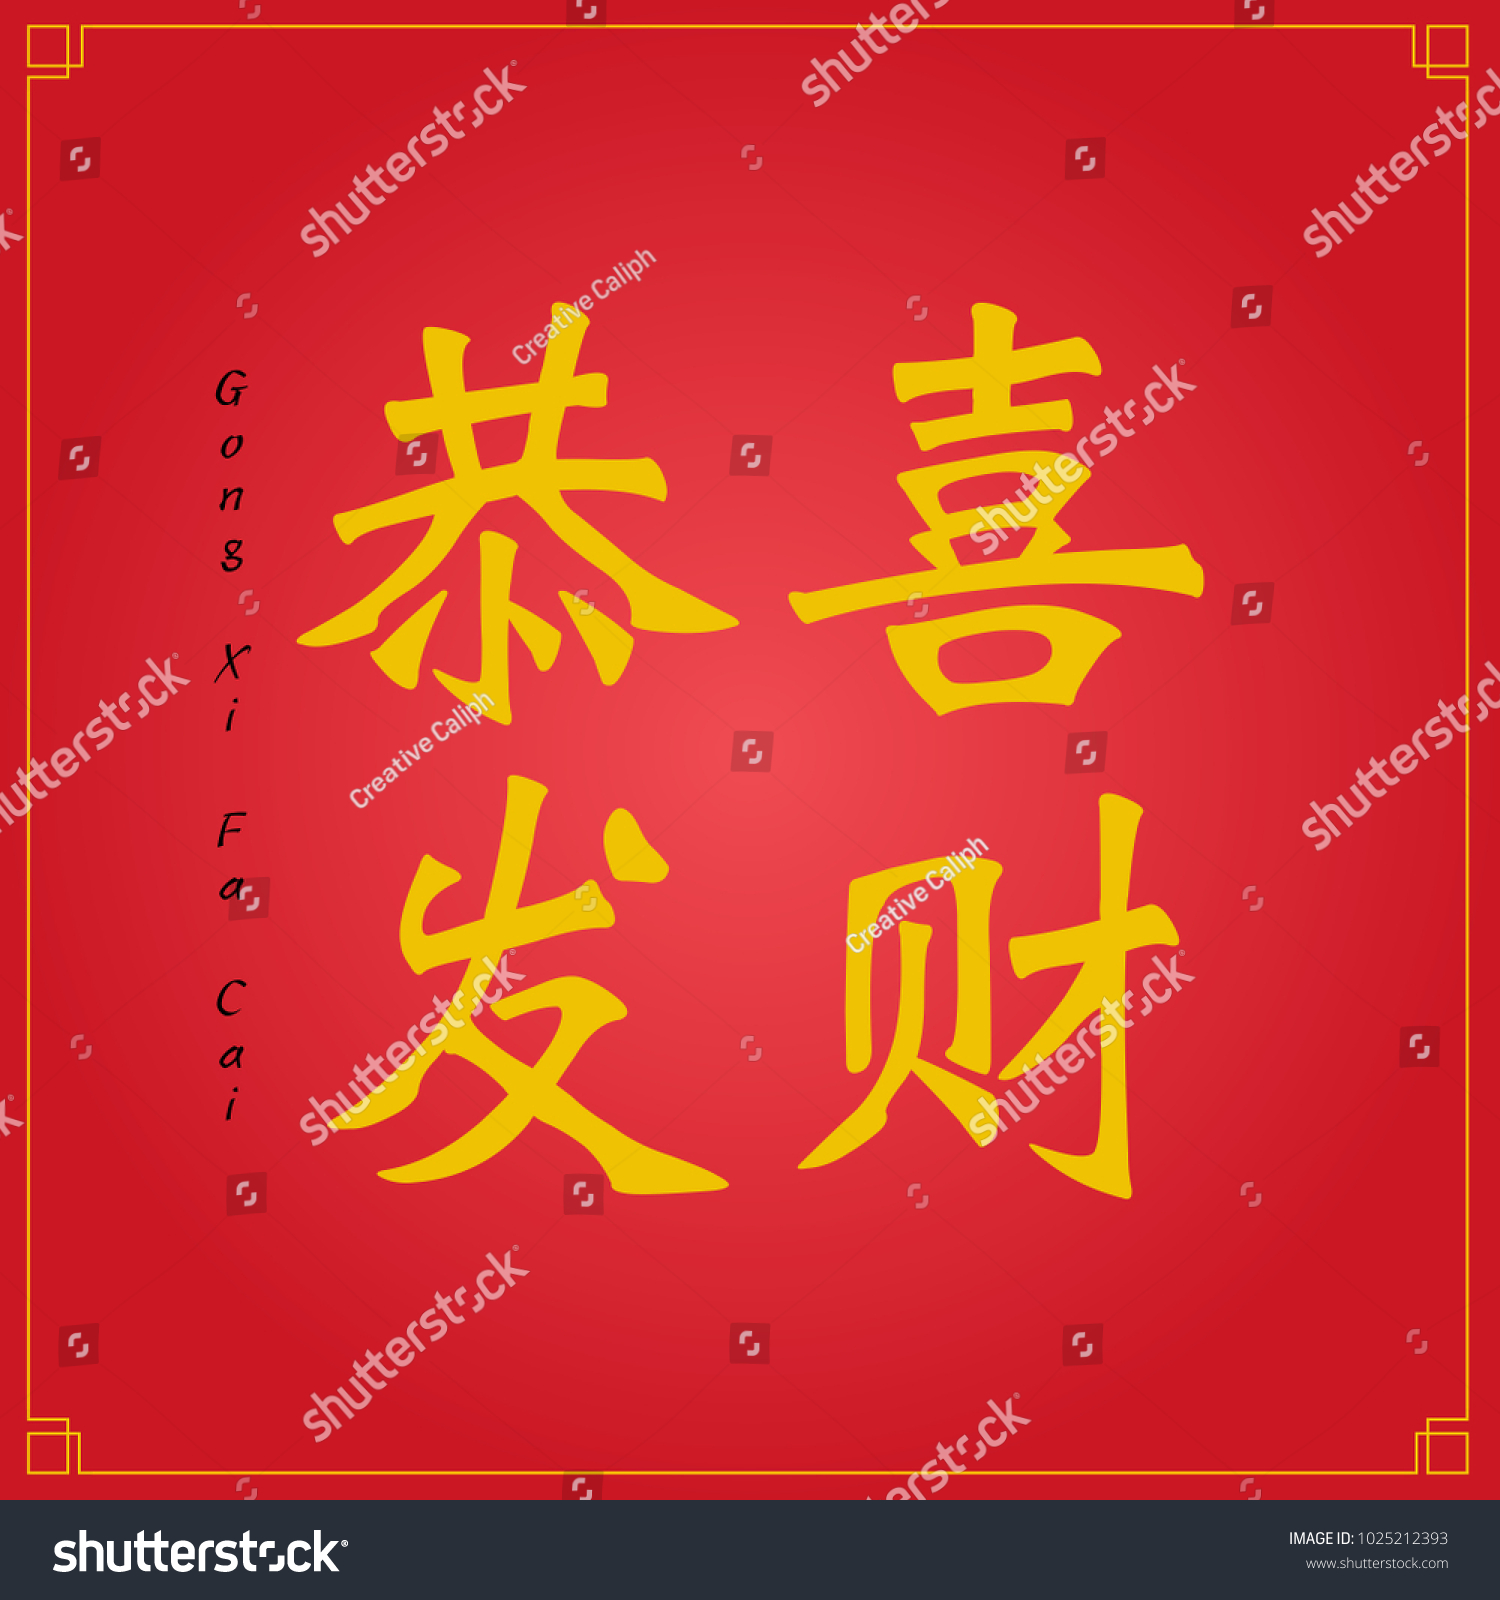 2018 chinese new year greeting card design chinese translation 2018 chinese new year greeting card design chinese translation gong xi fa cai means may prosperity be with you ez canvas m4hsunfo